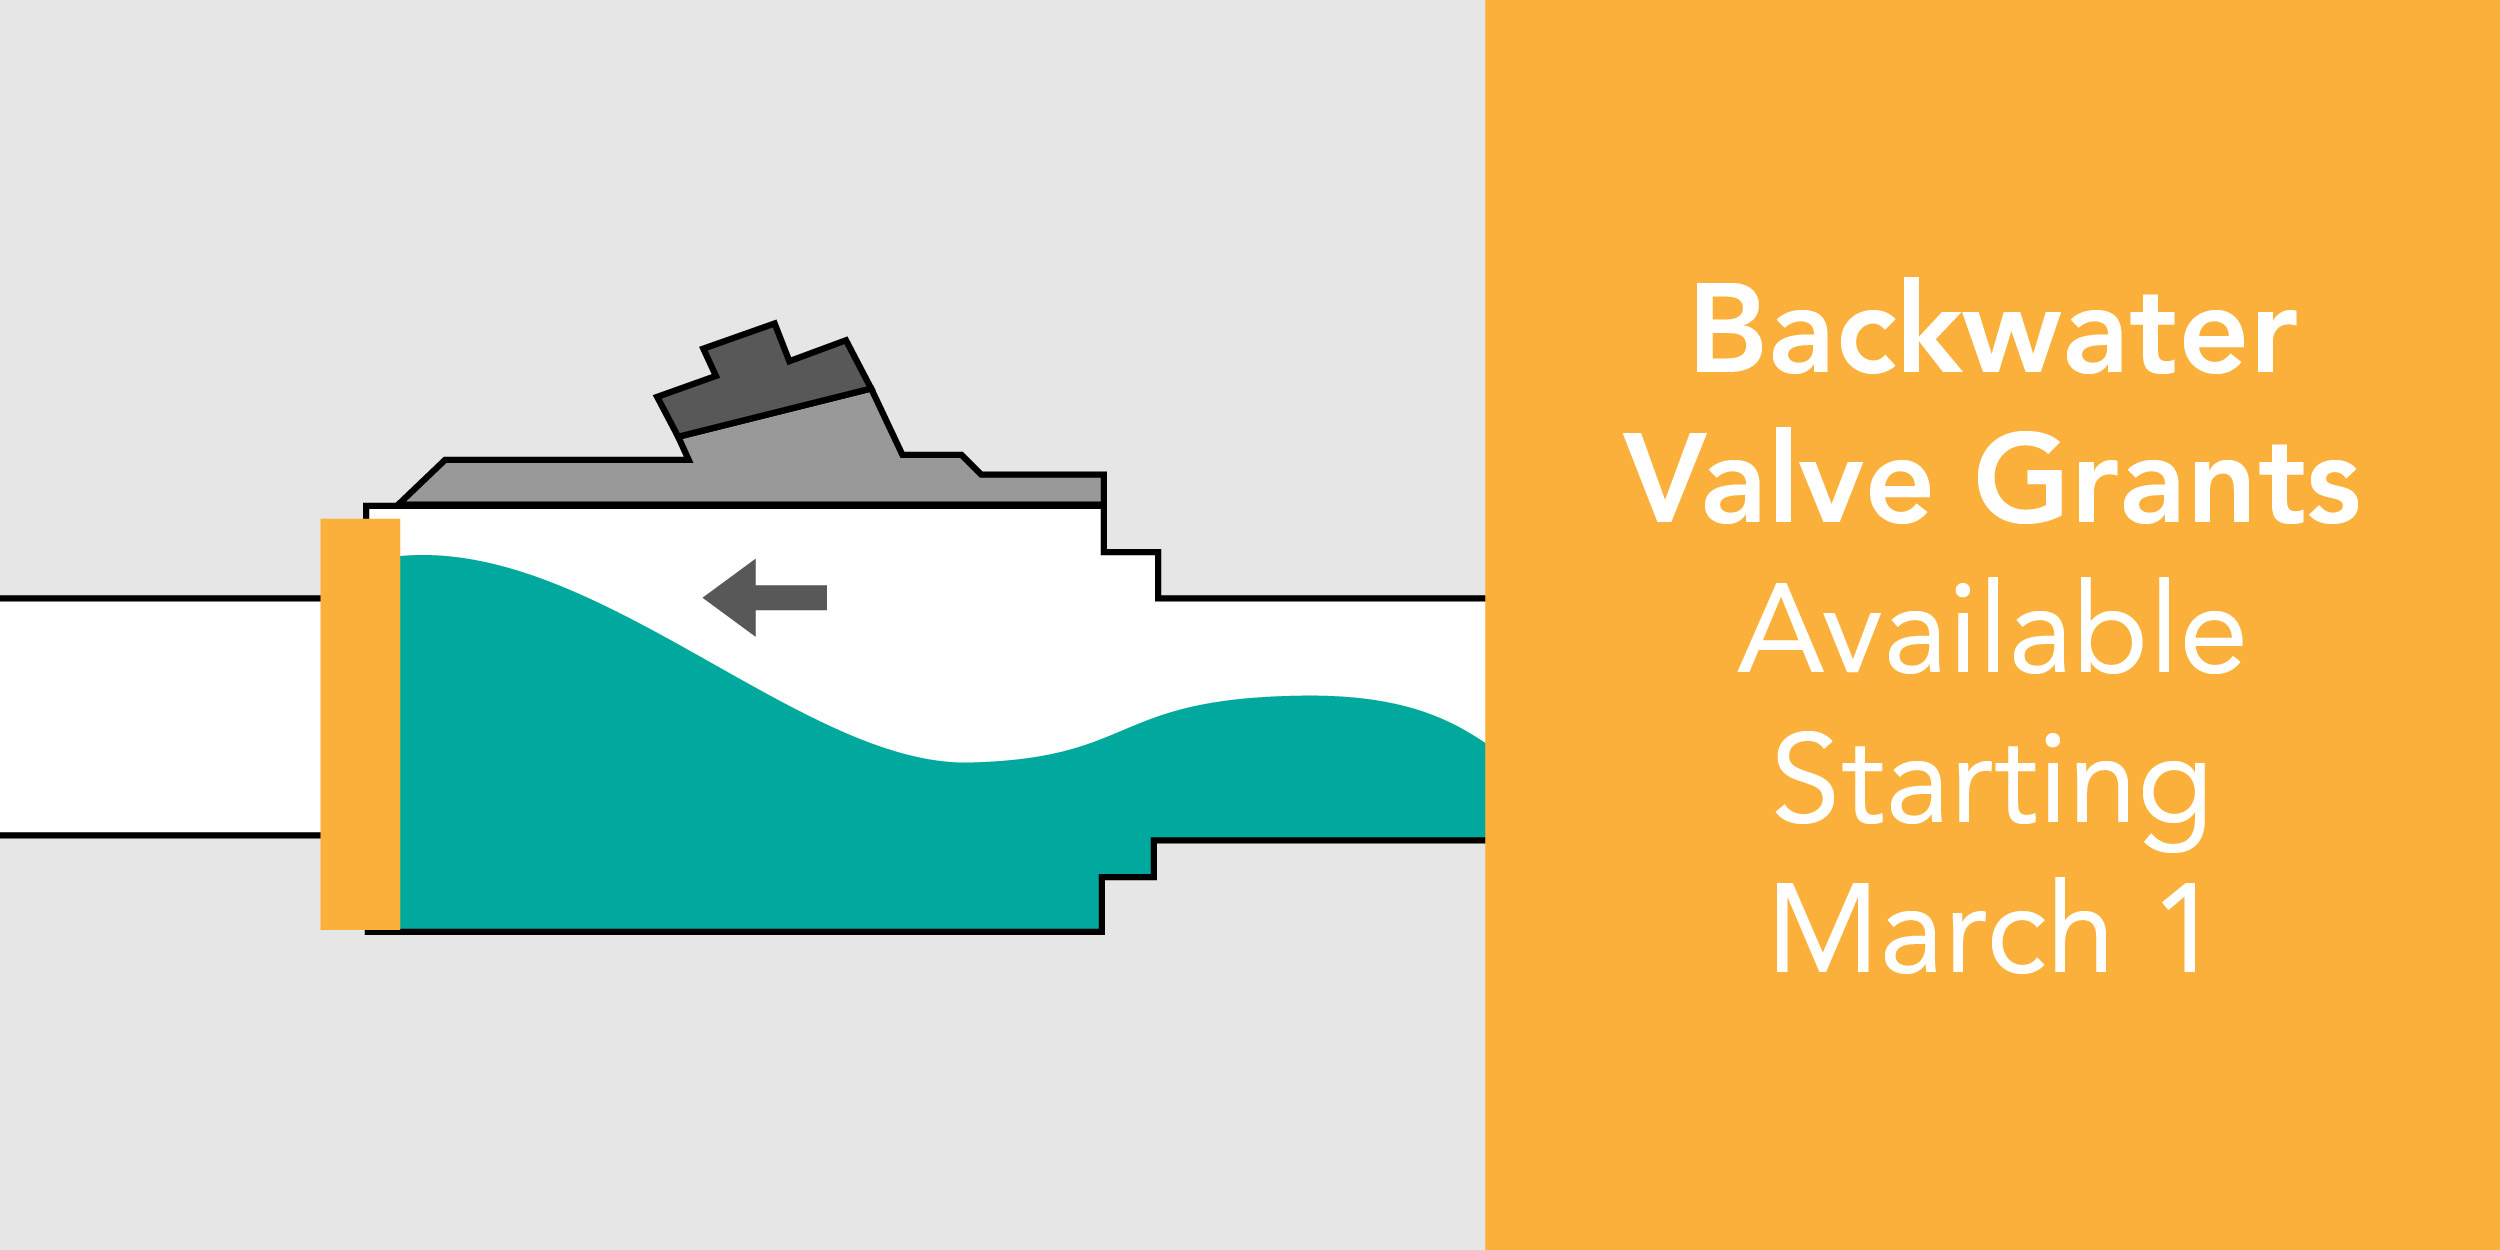 Backwater valve grants available starting March 1